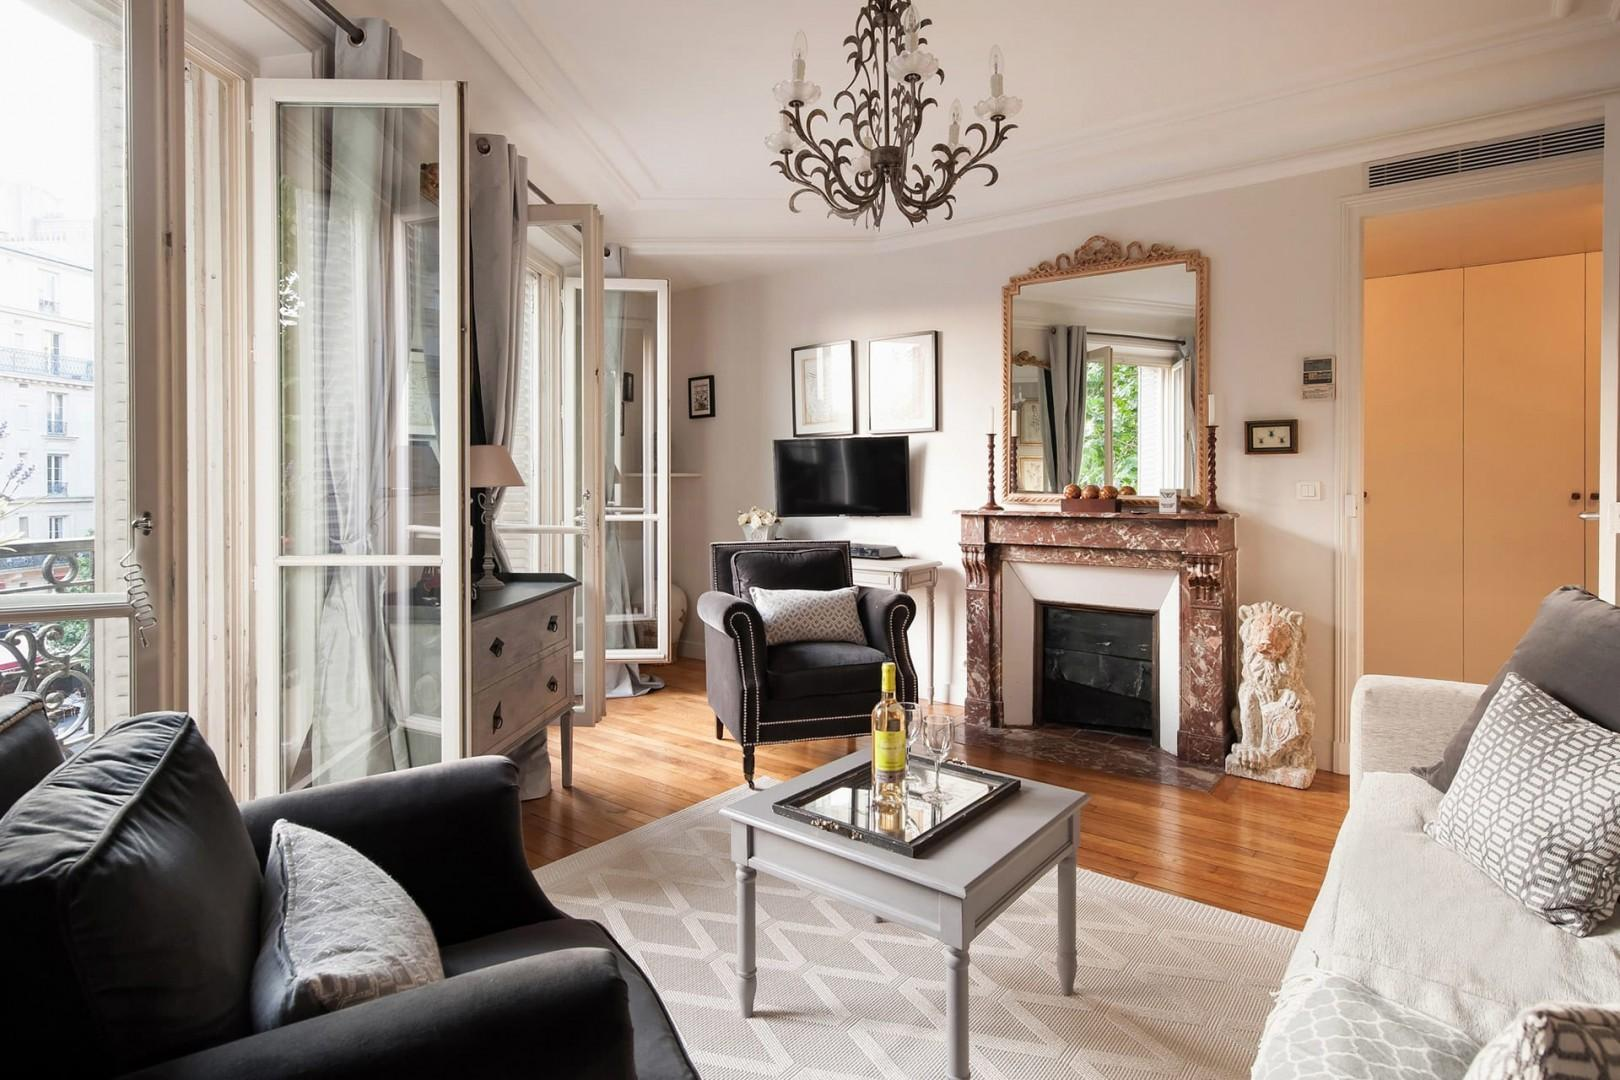 The living room is ultra-charming and truly Parisian!